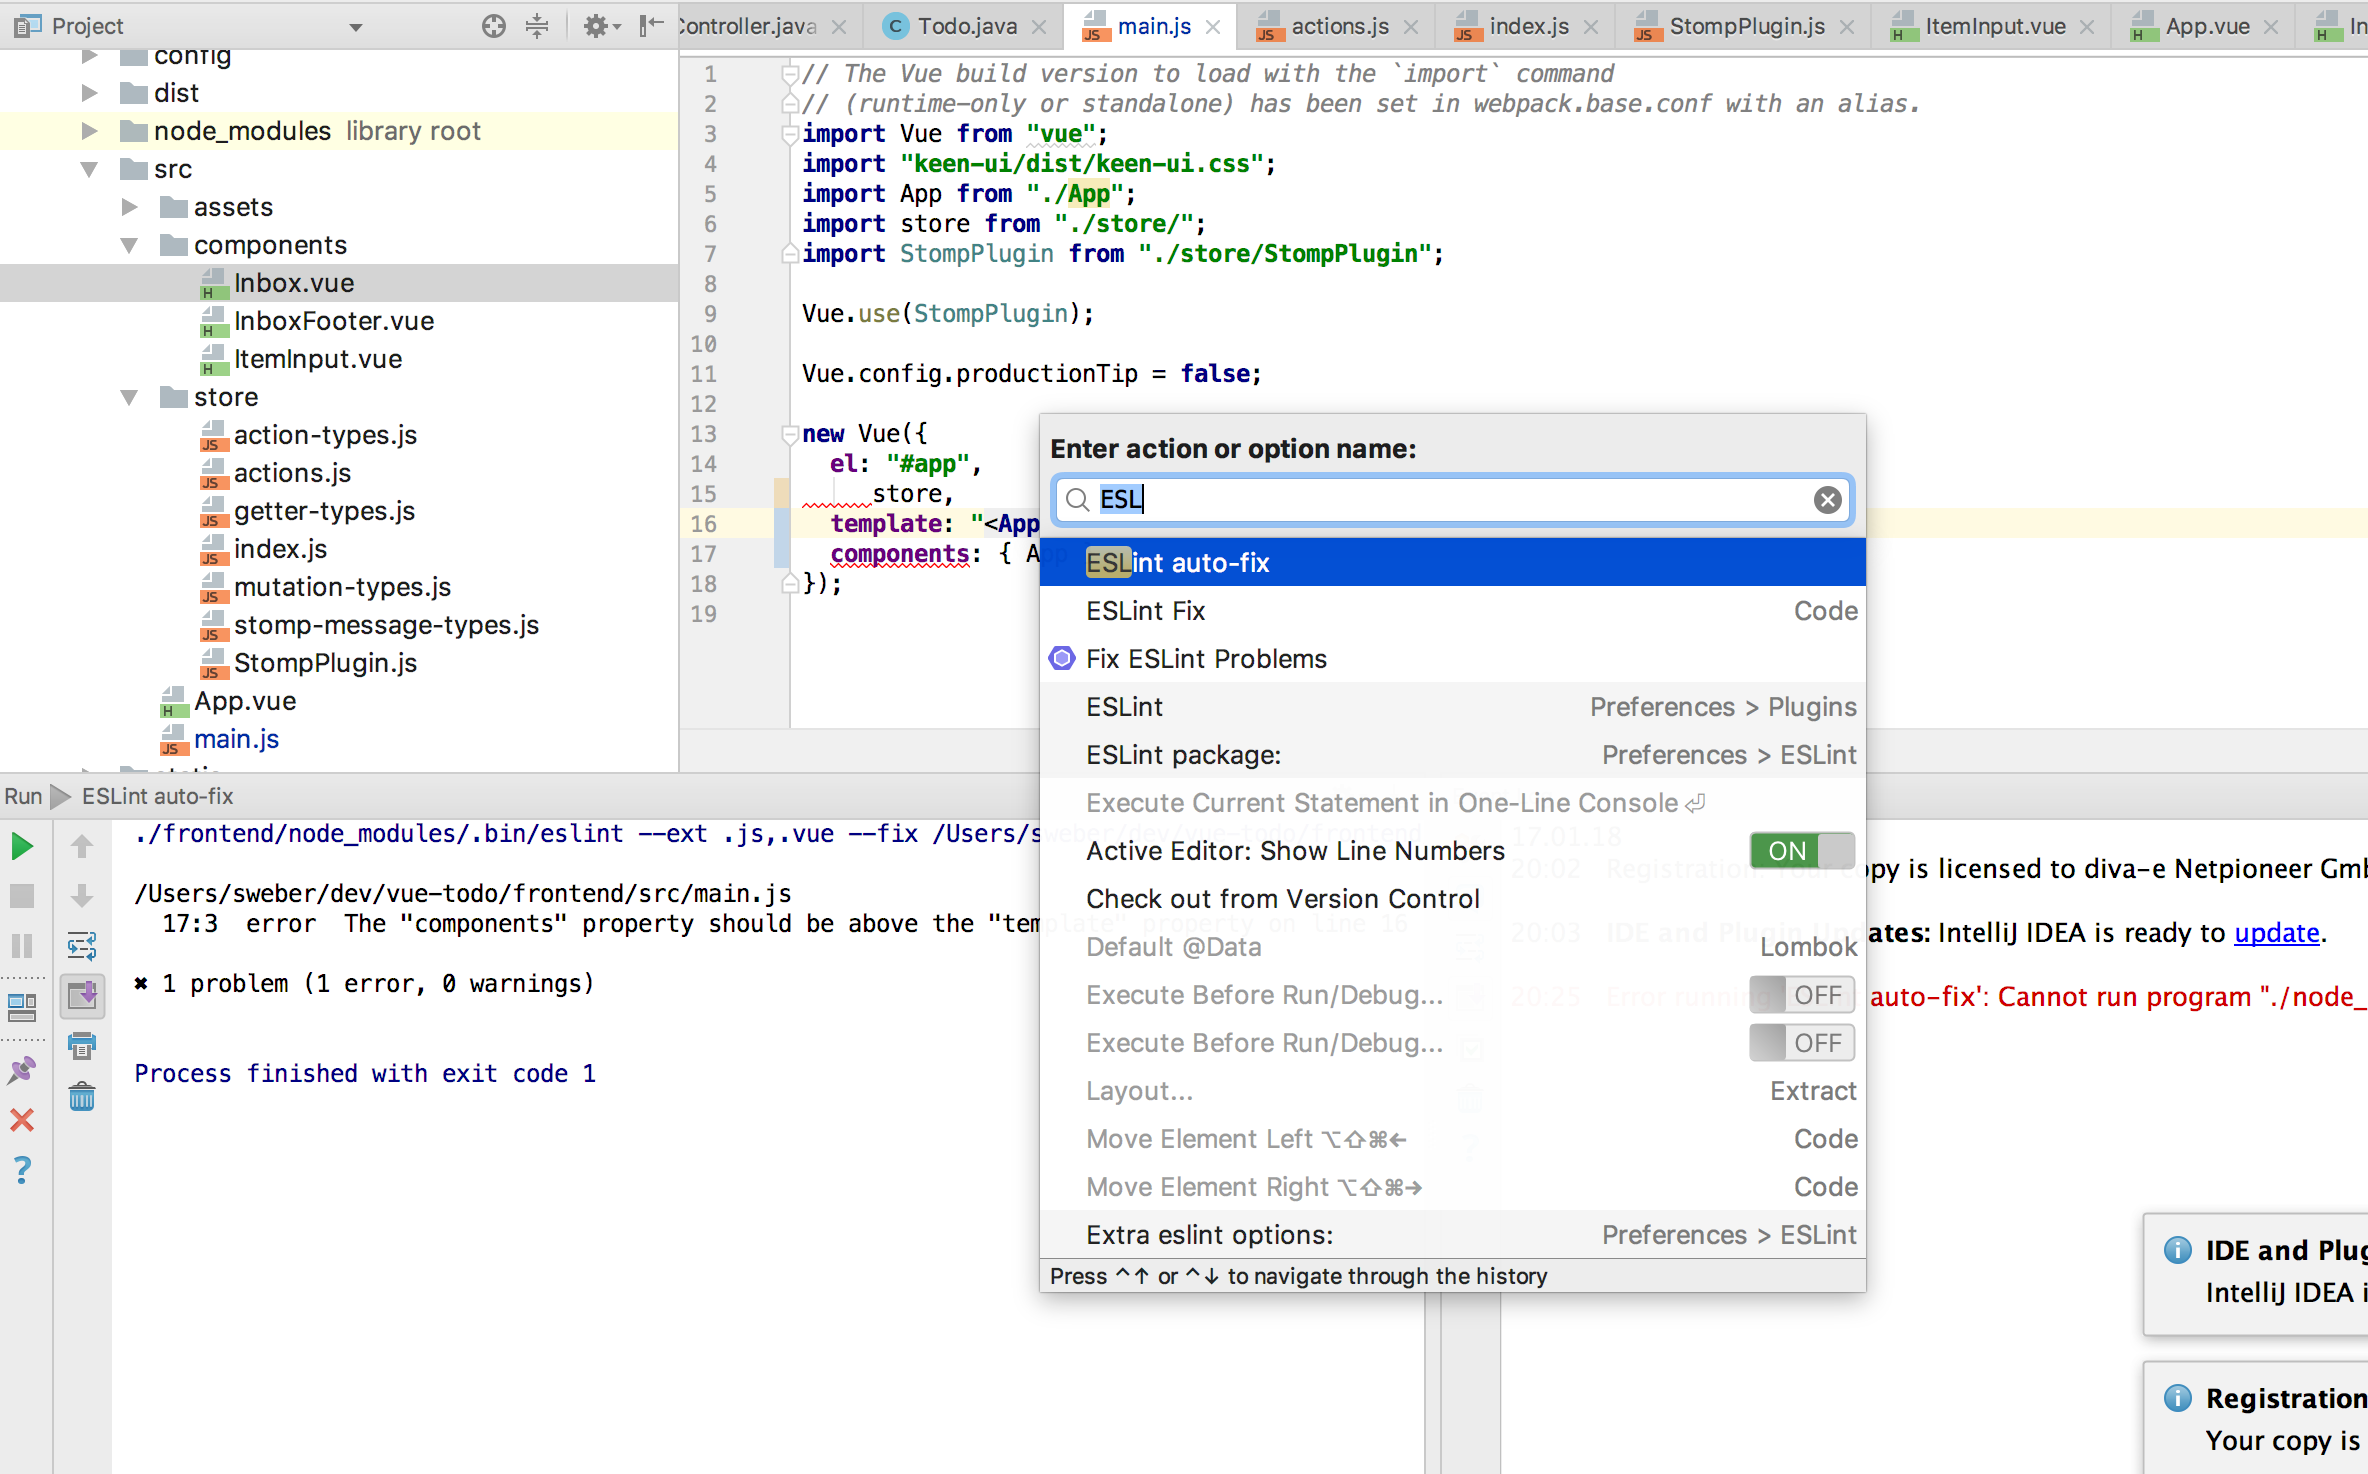 Running the custom IntelliJ external tool